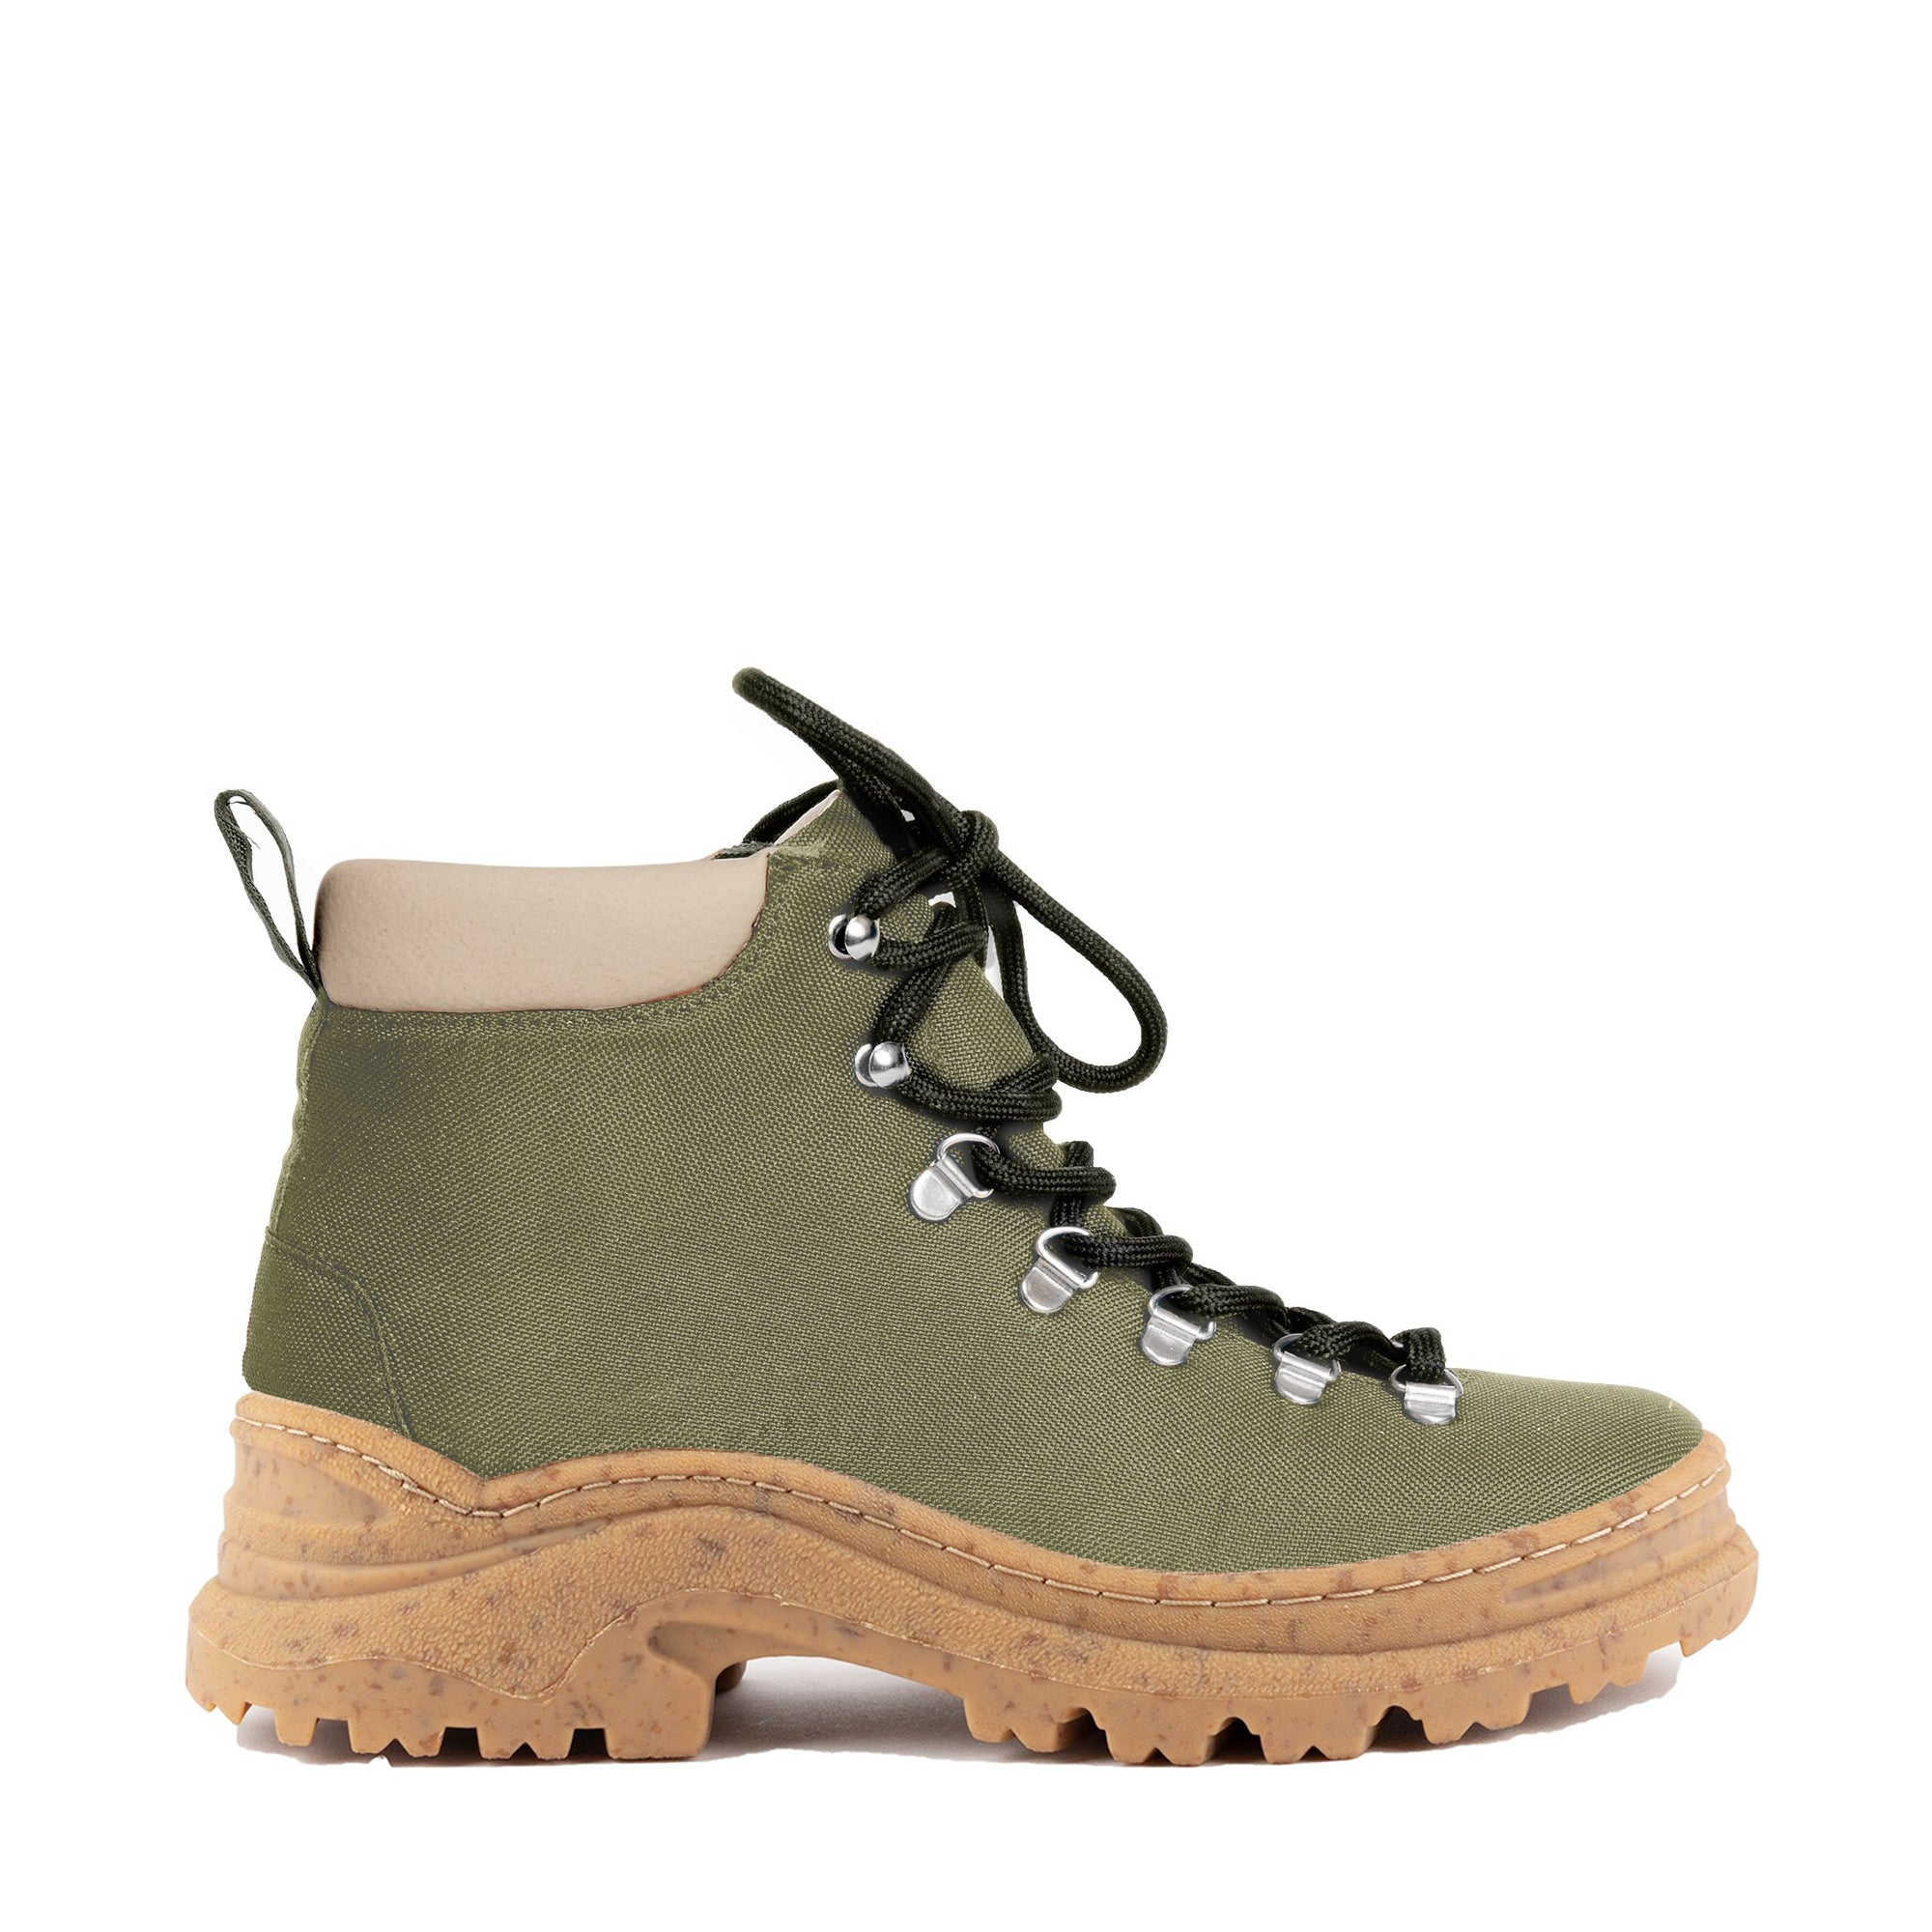 The Weekend Boot in Sage